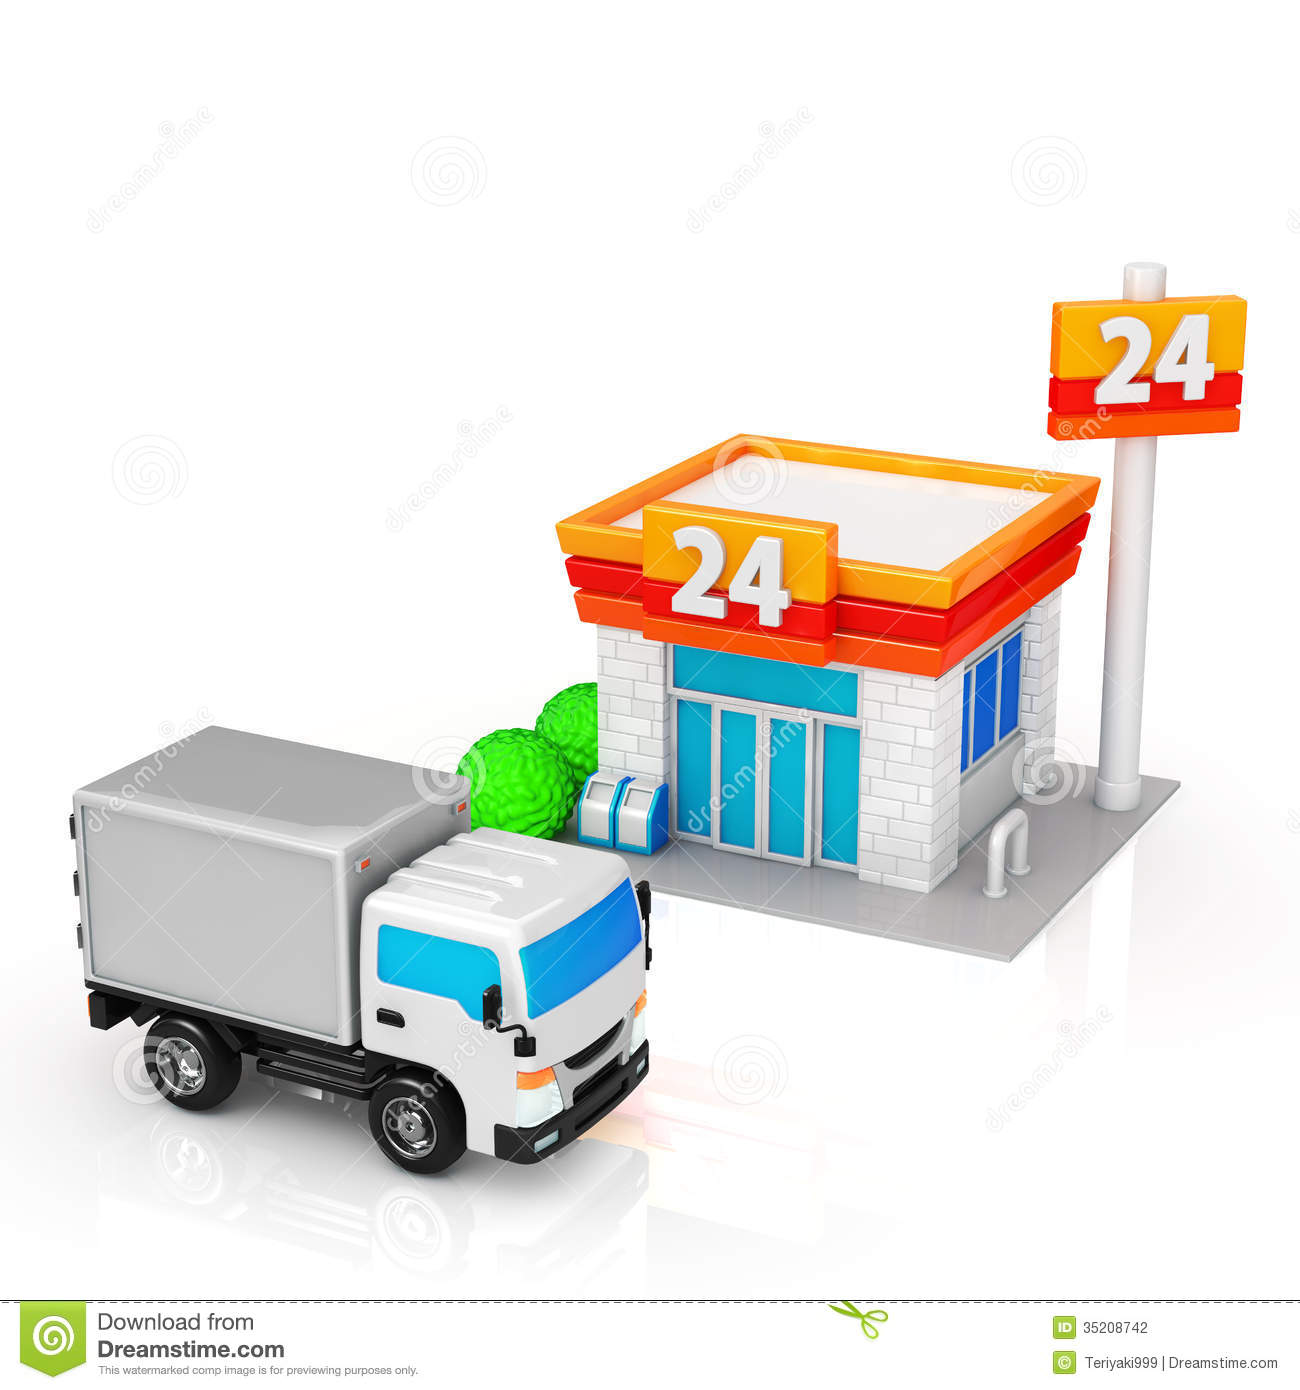 Store Delivery. An ongoing objective of many retailers is taking measures to improve their delivery model. Partnering with National Retail Systems, Inc. as your transportation provider can get your product to consumers much faster than that of traditional methods.